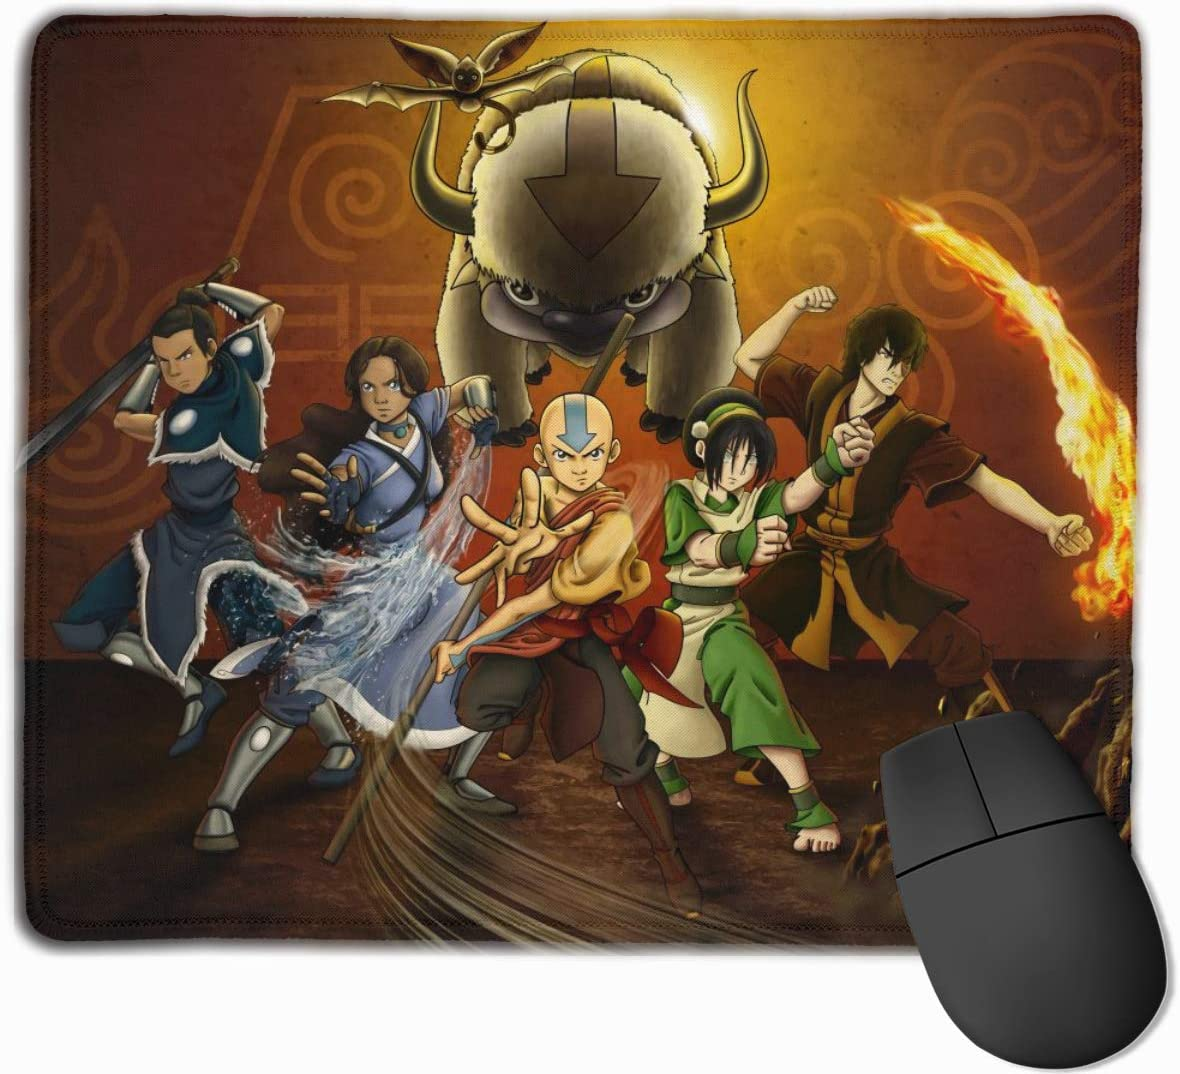 Avatar The Last Airbender Mouse Pad with Locking Edge Gaming Speed Version Medium Cloth Mouse Mat Non-Slip Rubber Base Mousepad for Laptop Keyboard PC Computer